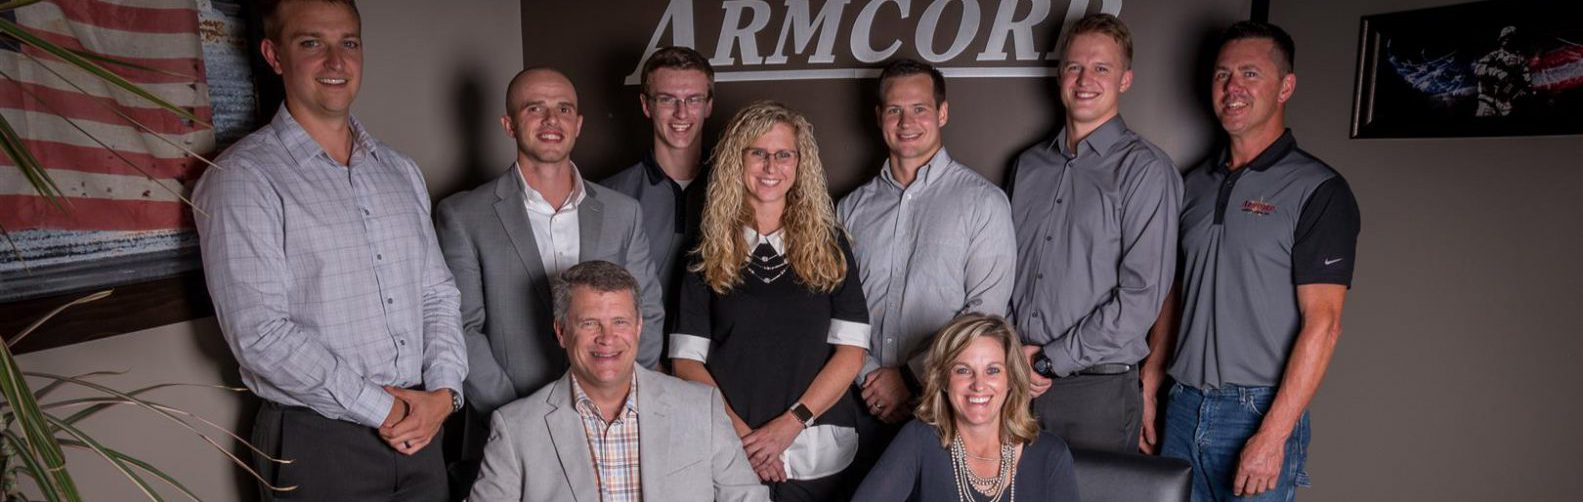 armcorp (56 of 115) (Large)